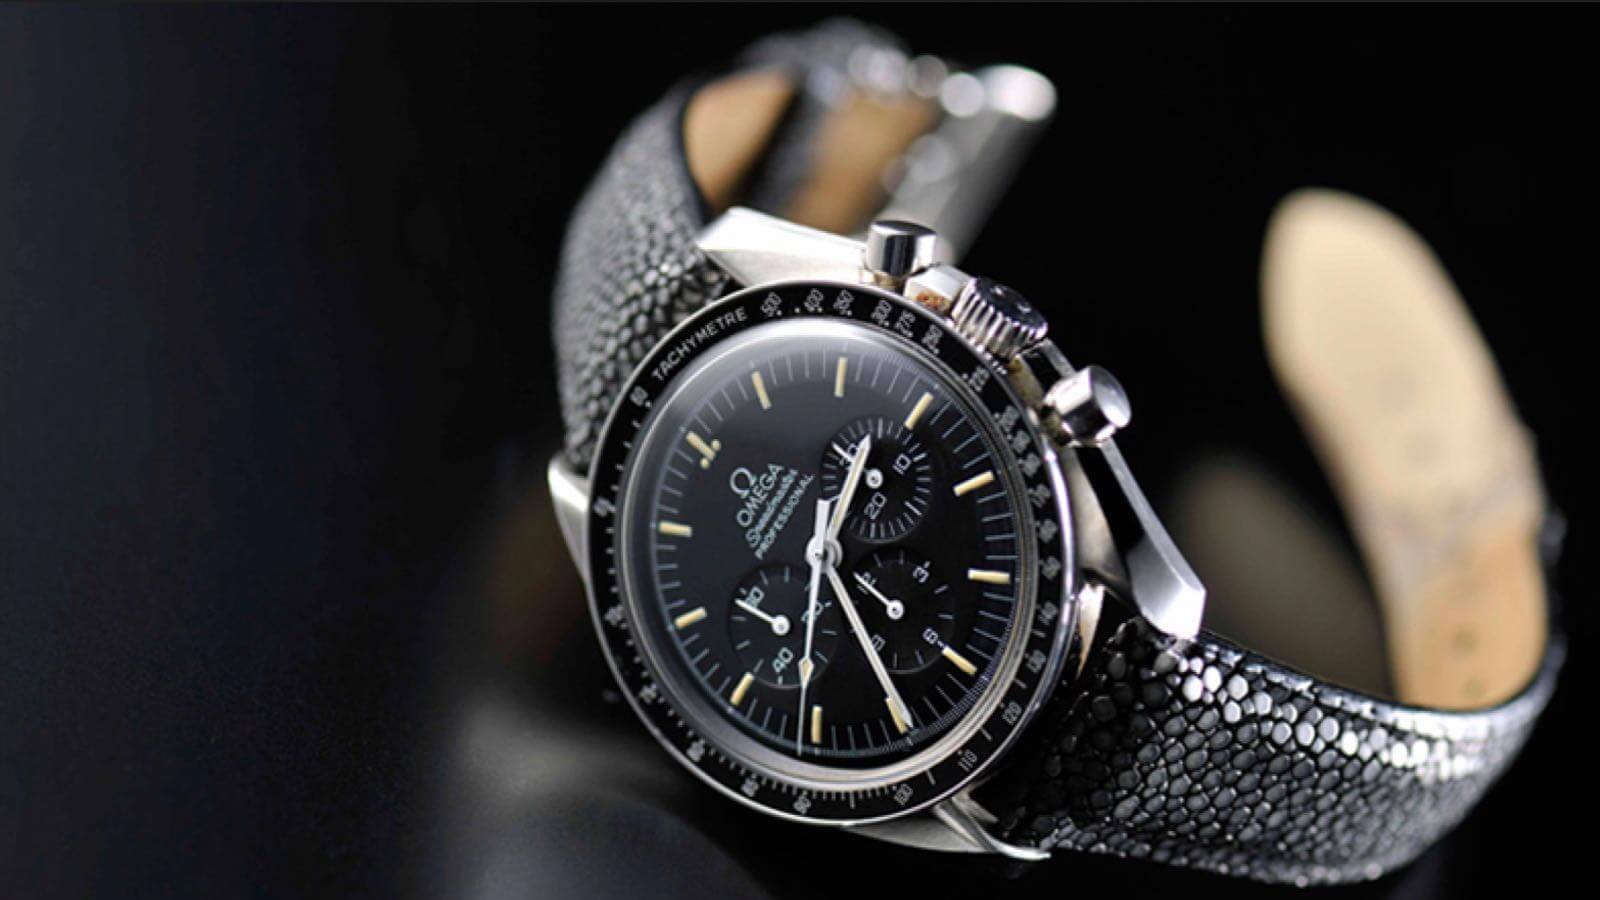 0029 The first watch I went to the moon  Omega Speedmaster story 04